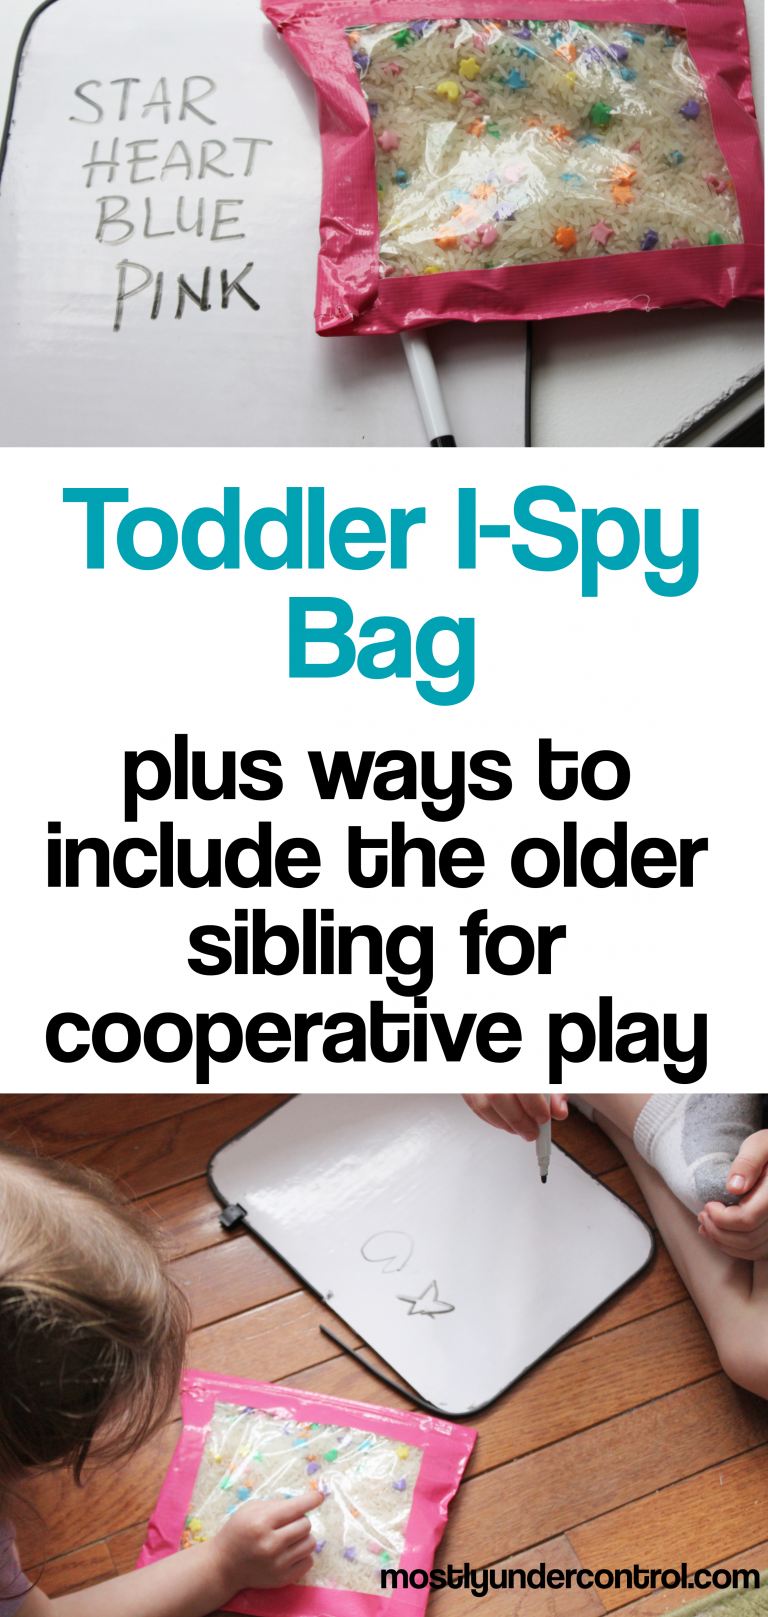 toddler i-spy bag plus ways to include the older sibling for some cooperative play